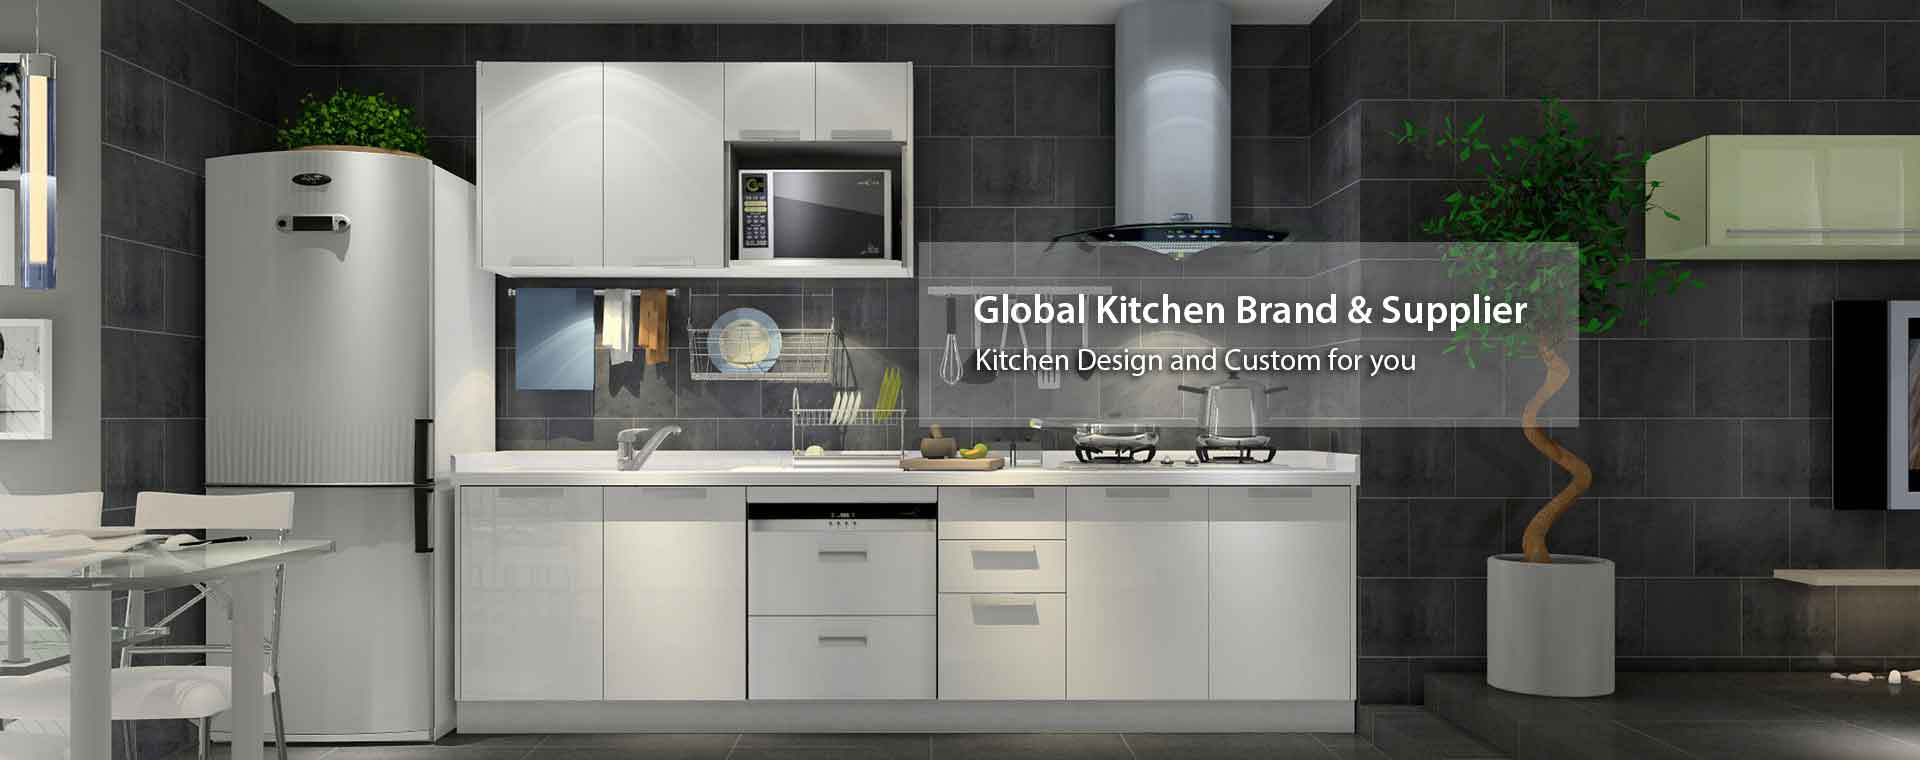 Kitchen Design and Custom